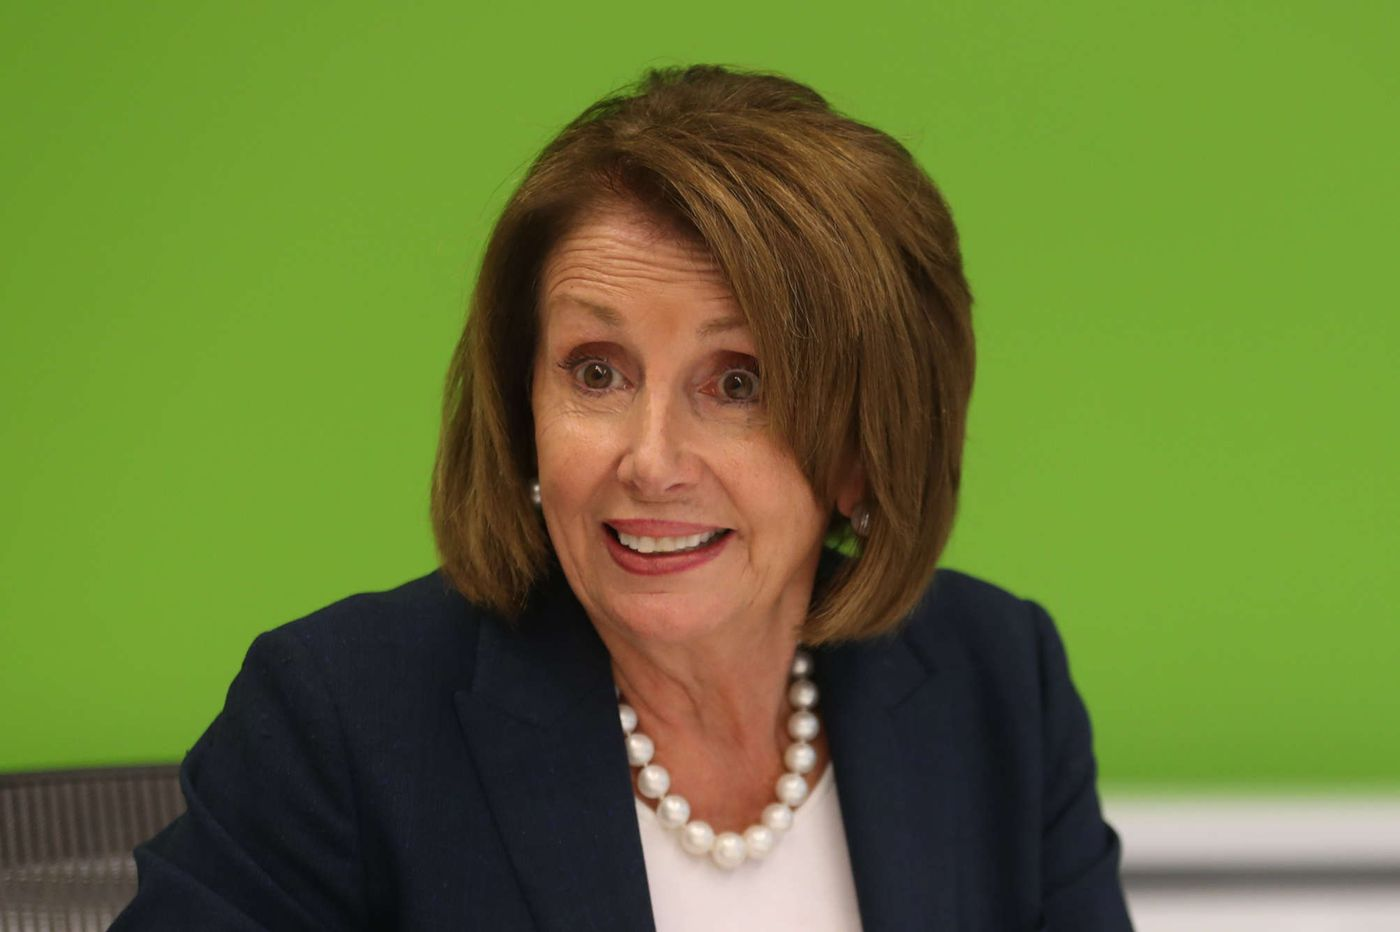 Pelosi's challenge in the House